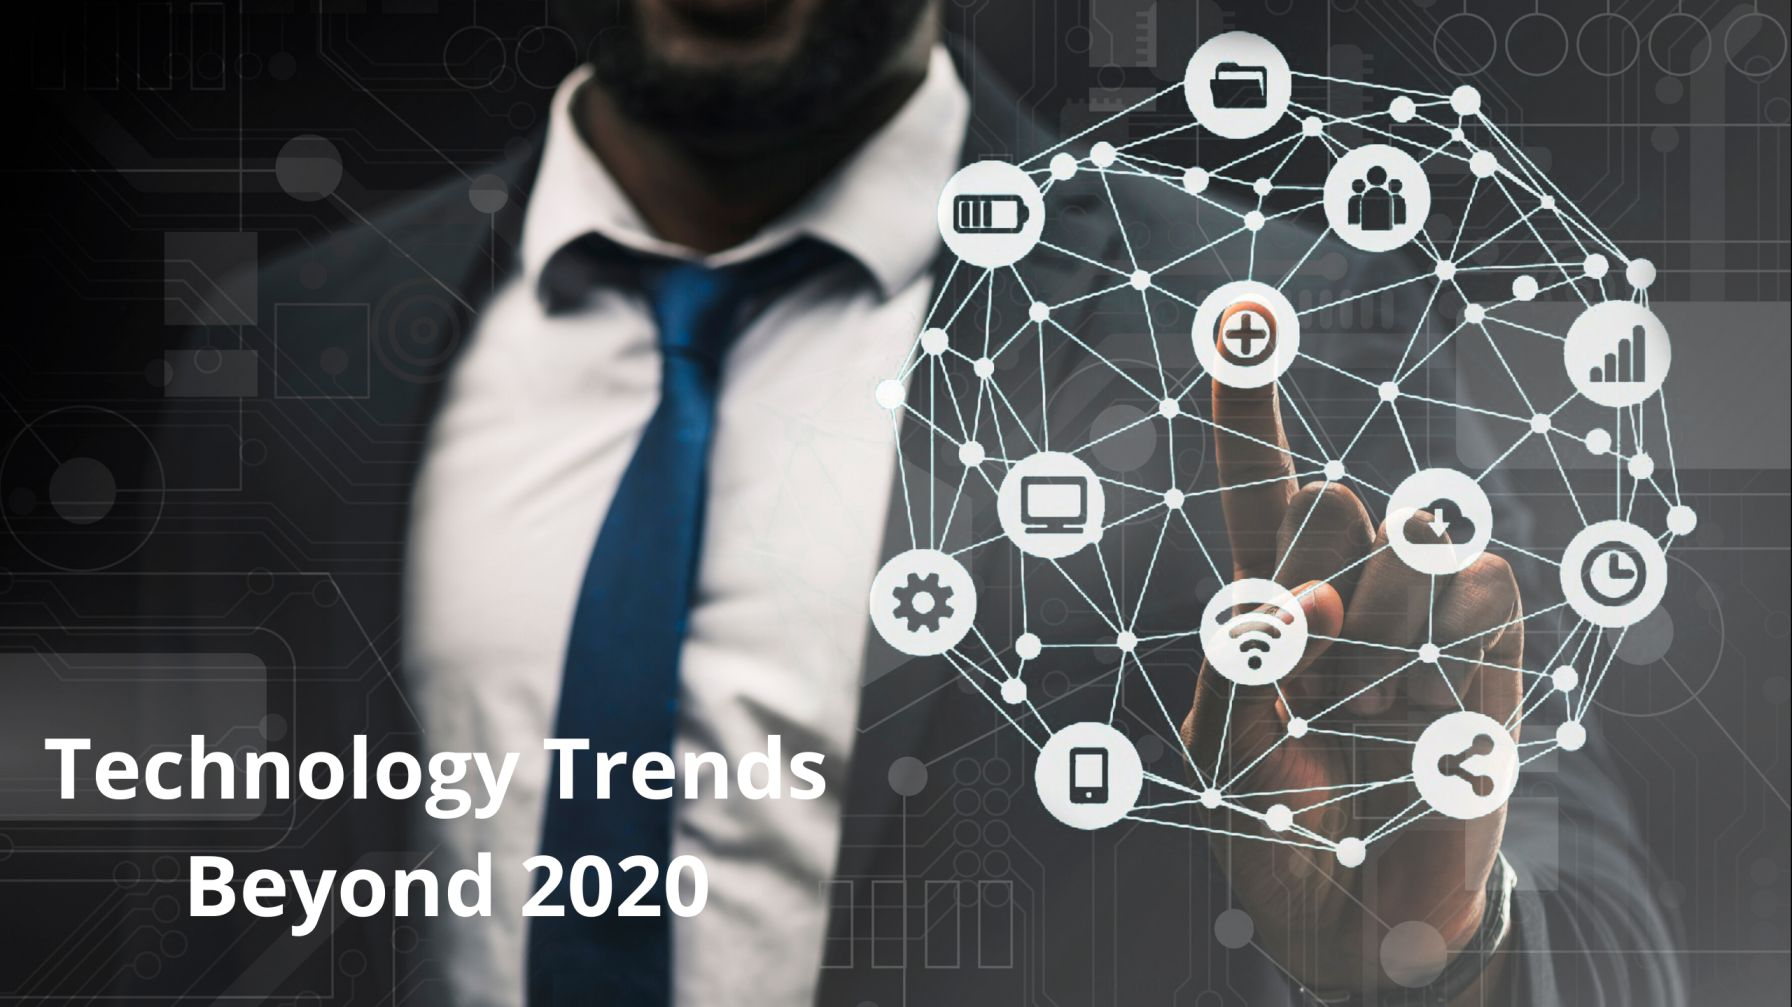 Technology Trends Beyond 2020